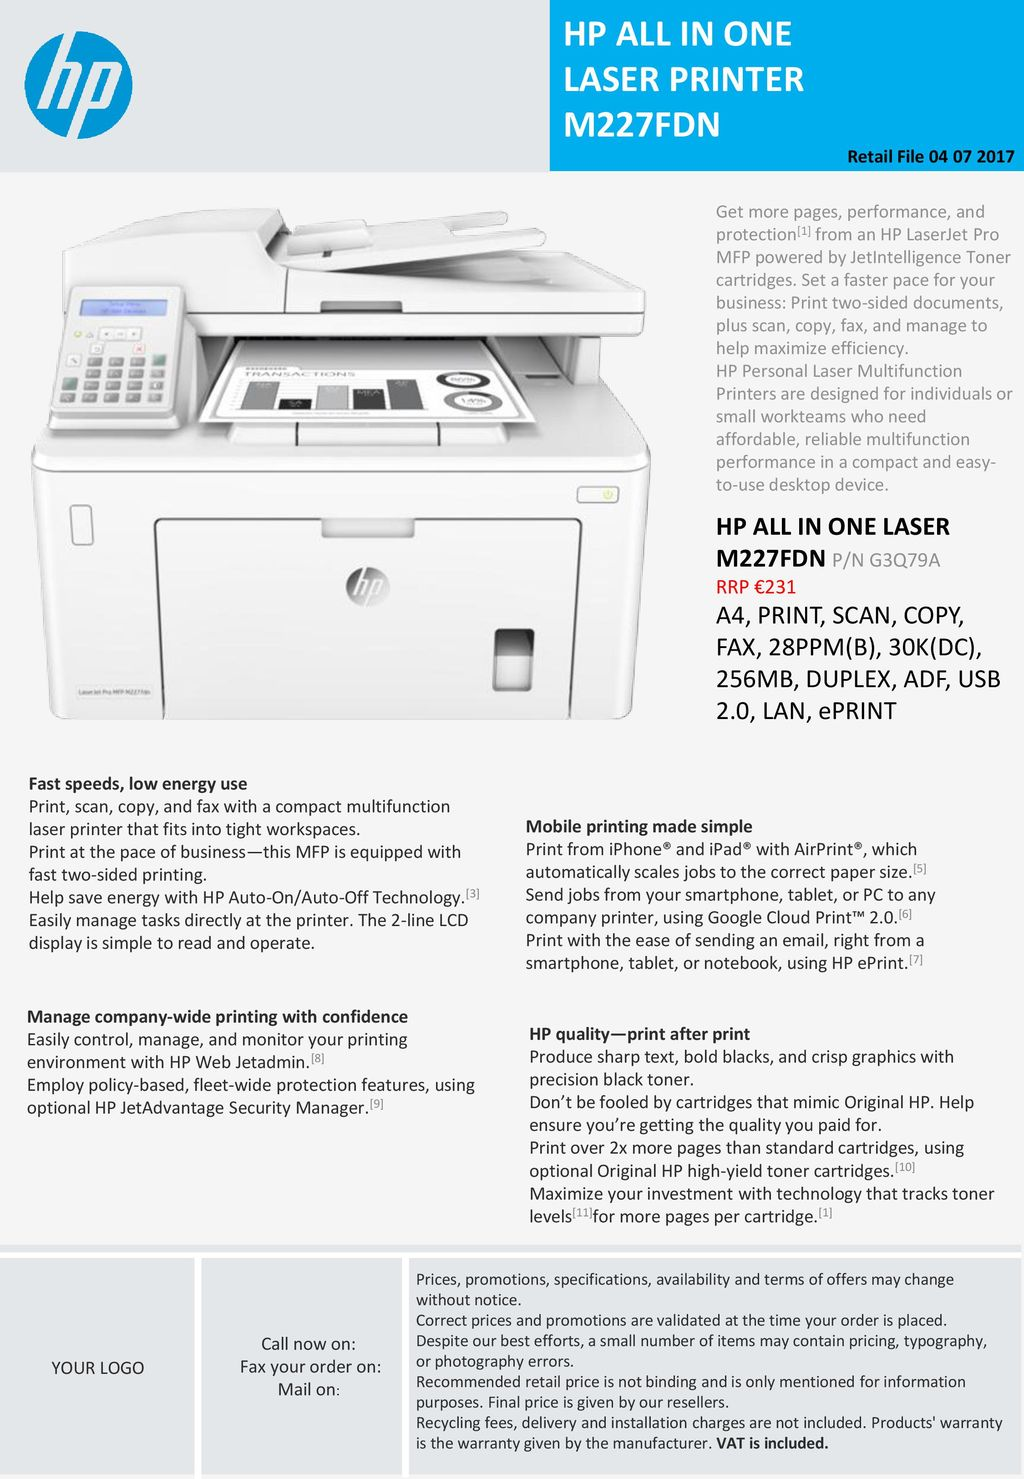 HP ALL IN ONE LASER PRINTER M227FDN - ppt download